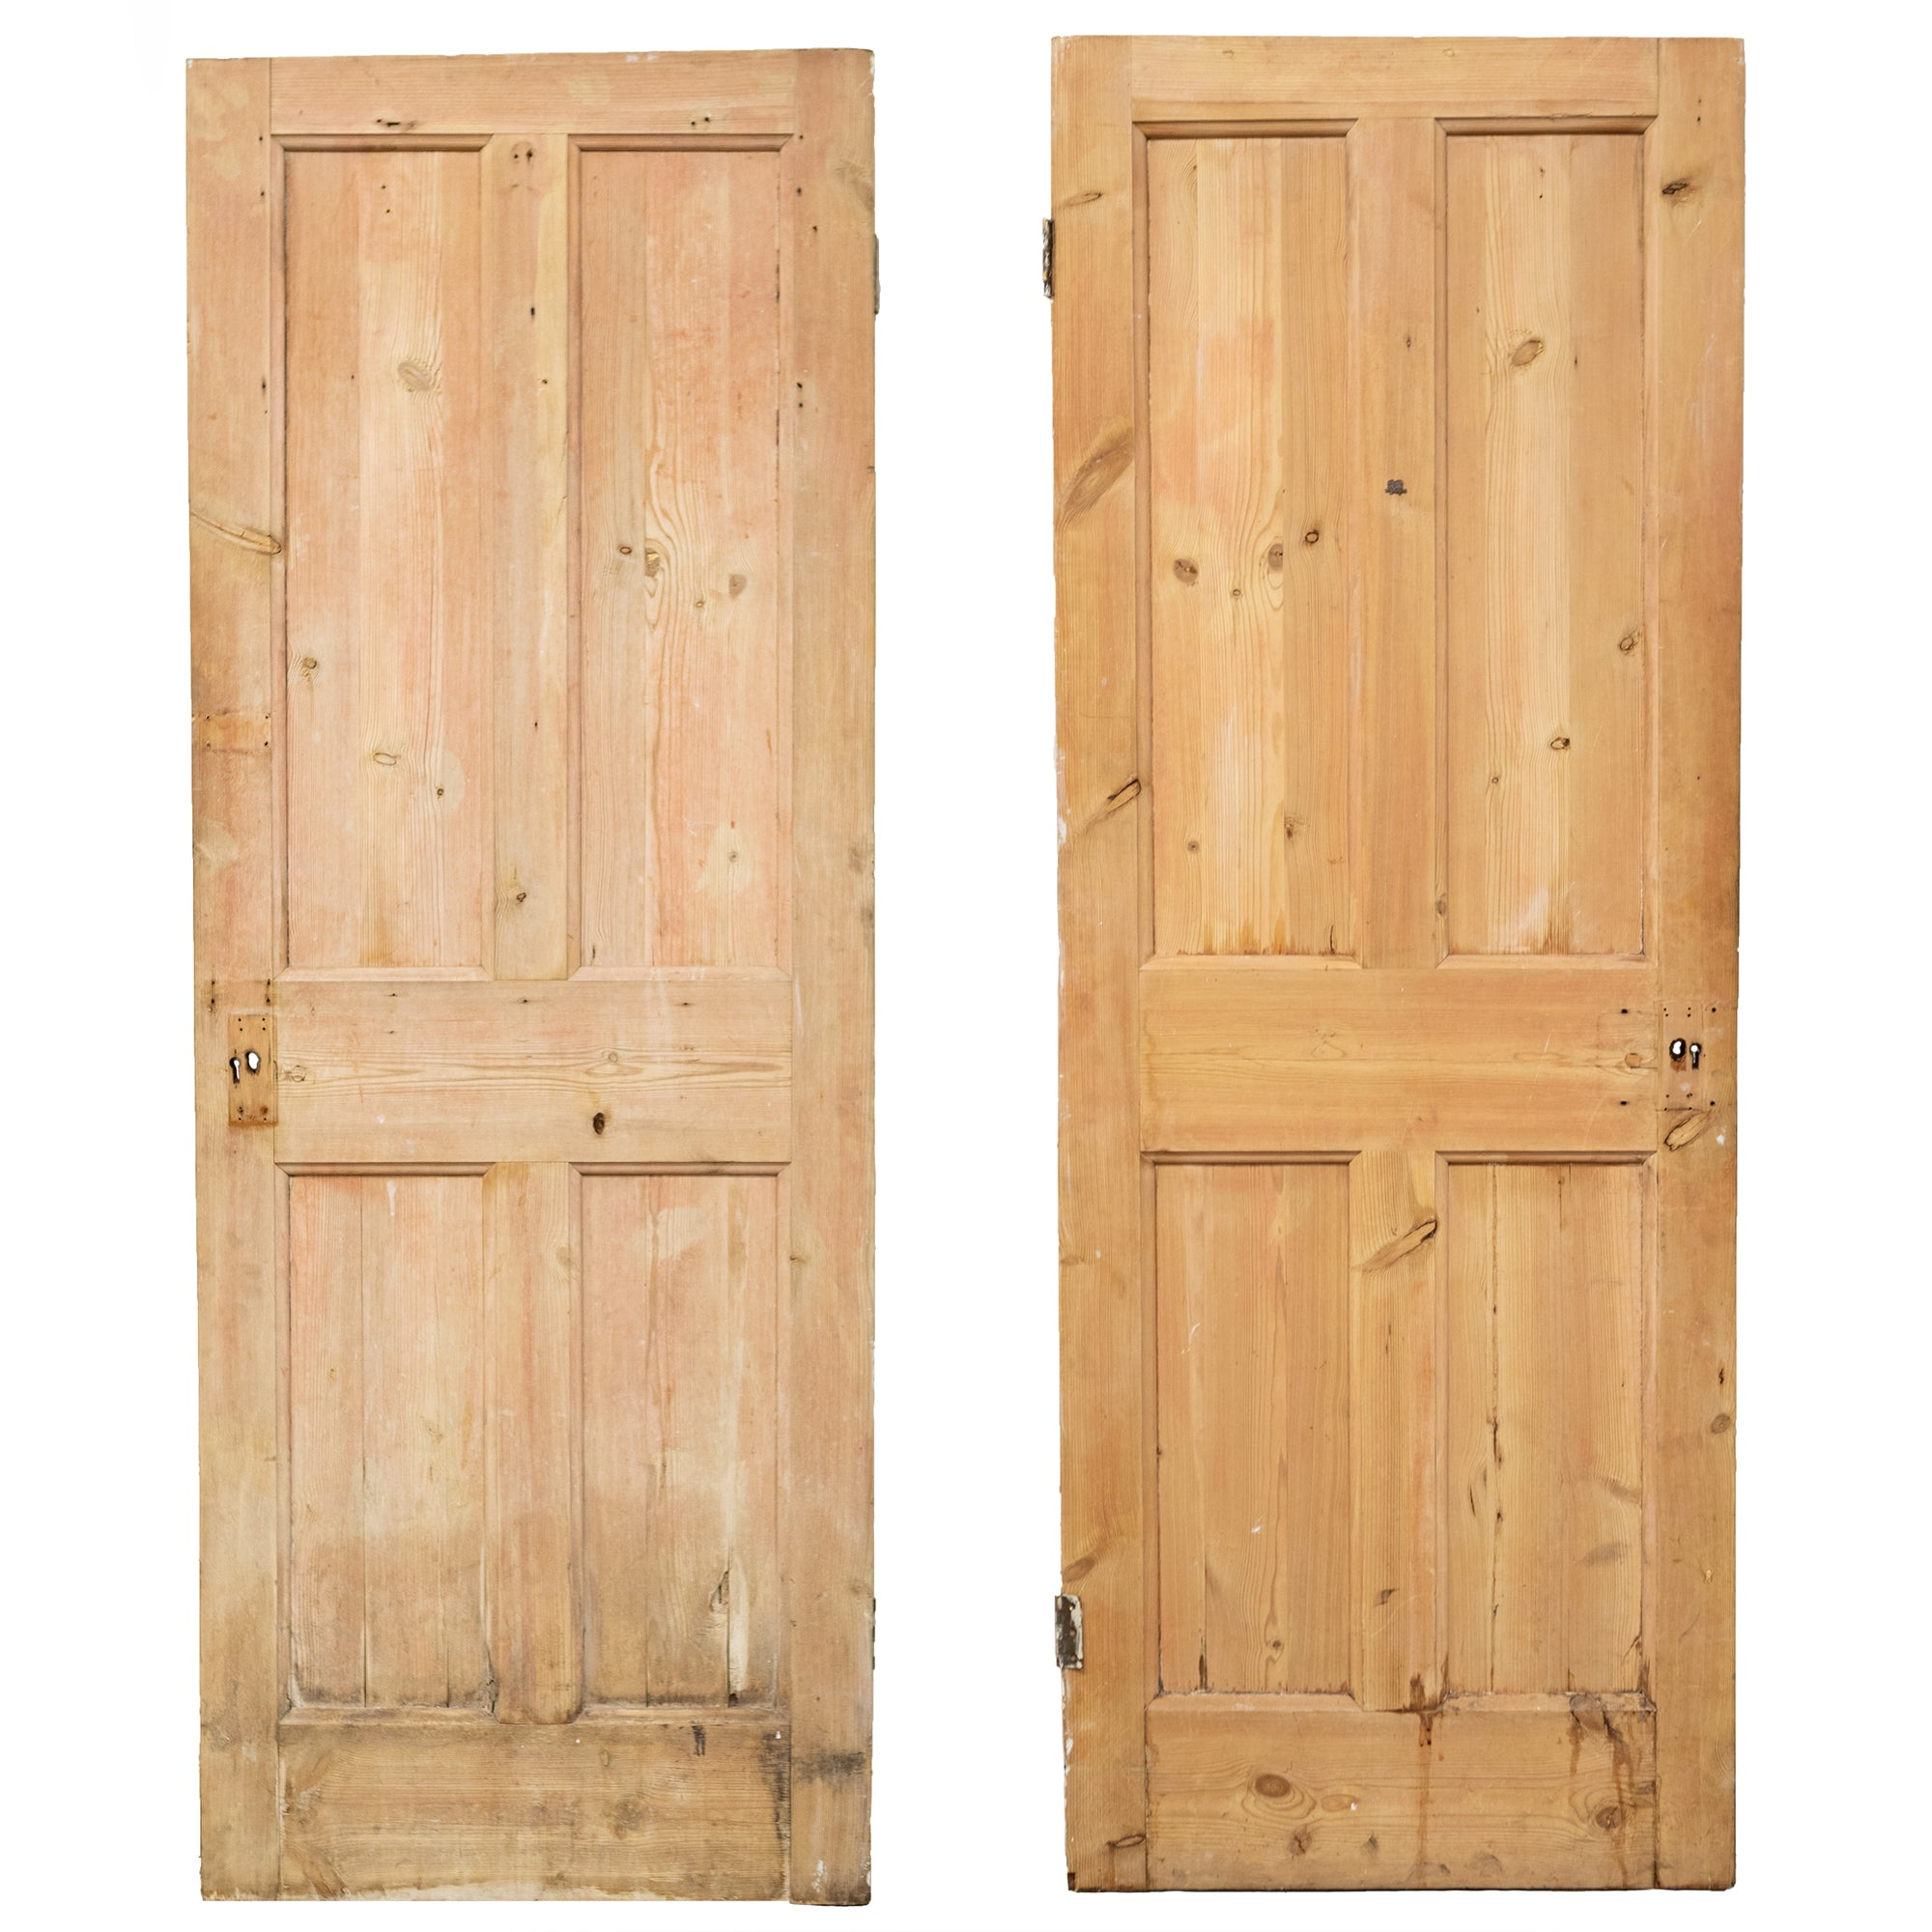 Reclaimed Solid Pine Door Stripped - 192cm x 70cm | The Architectural Forum